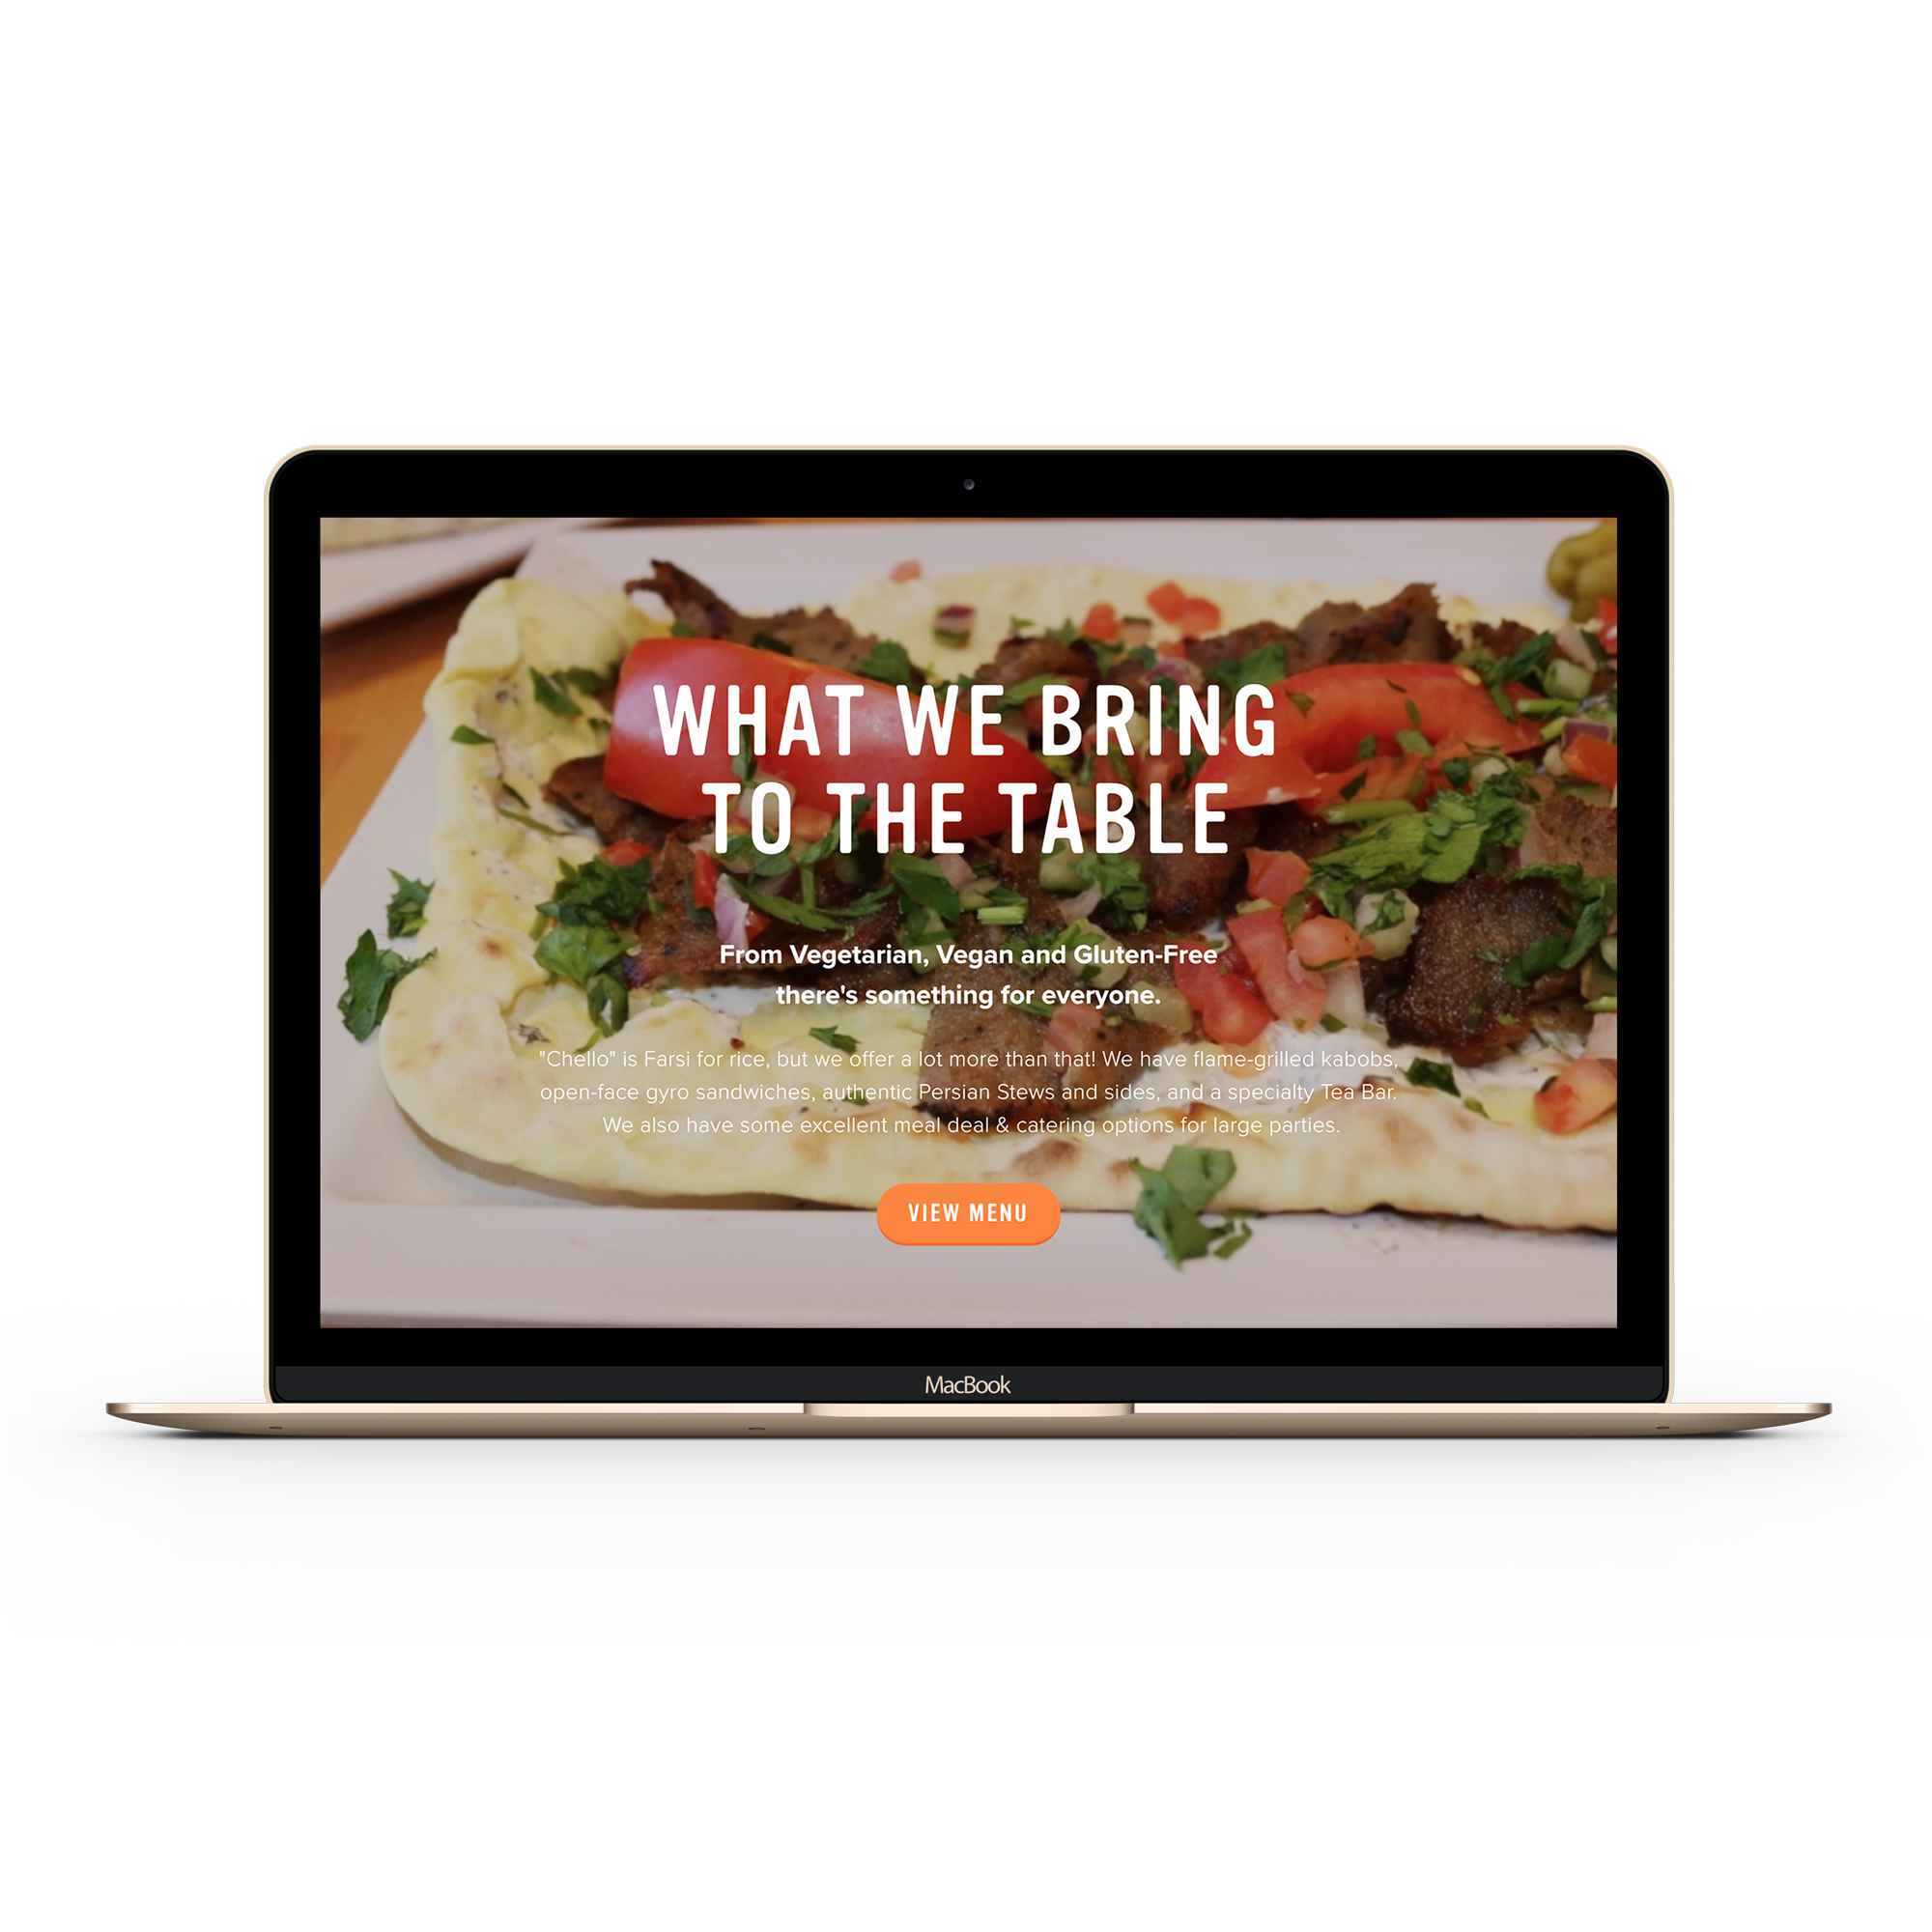 Chello Grill - Website Design, Photography, Online Marketing